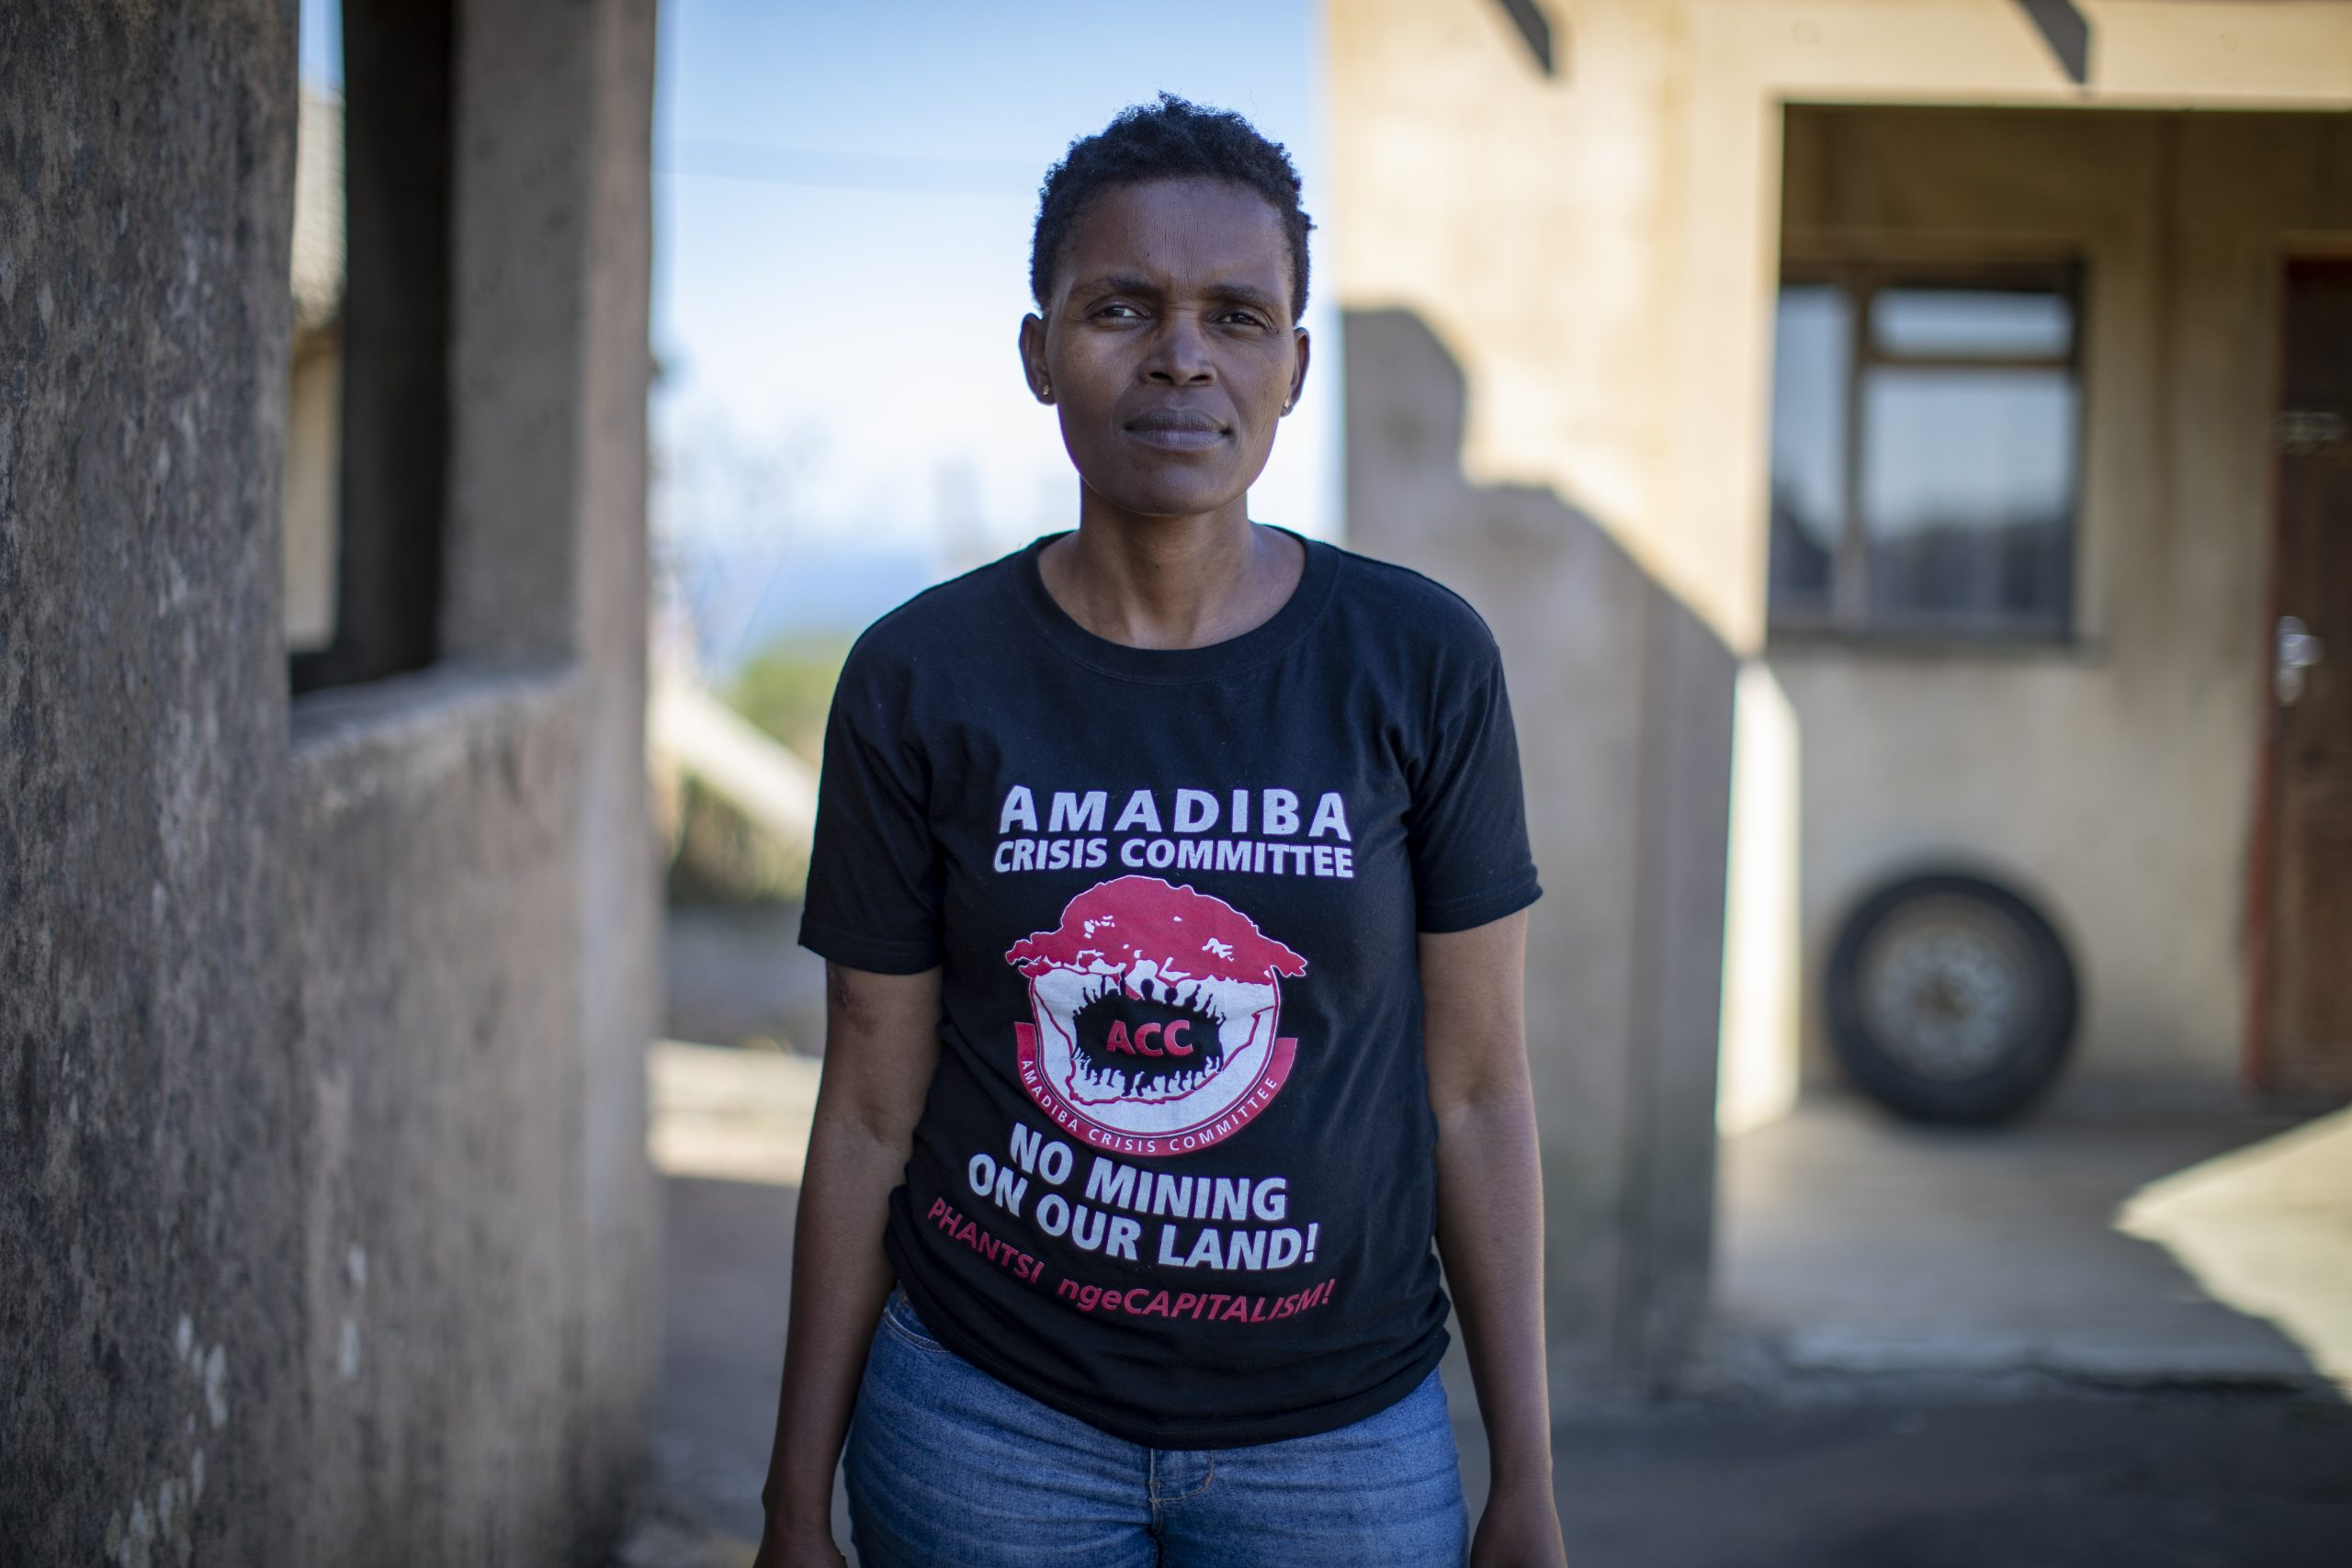 South Africa: Protect Nonhle Mbuthuma and defend her local community